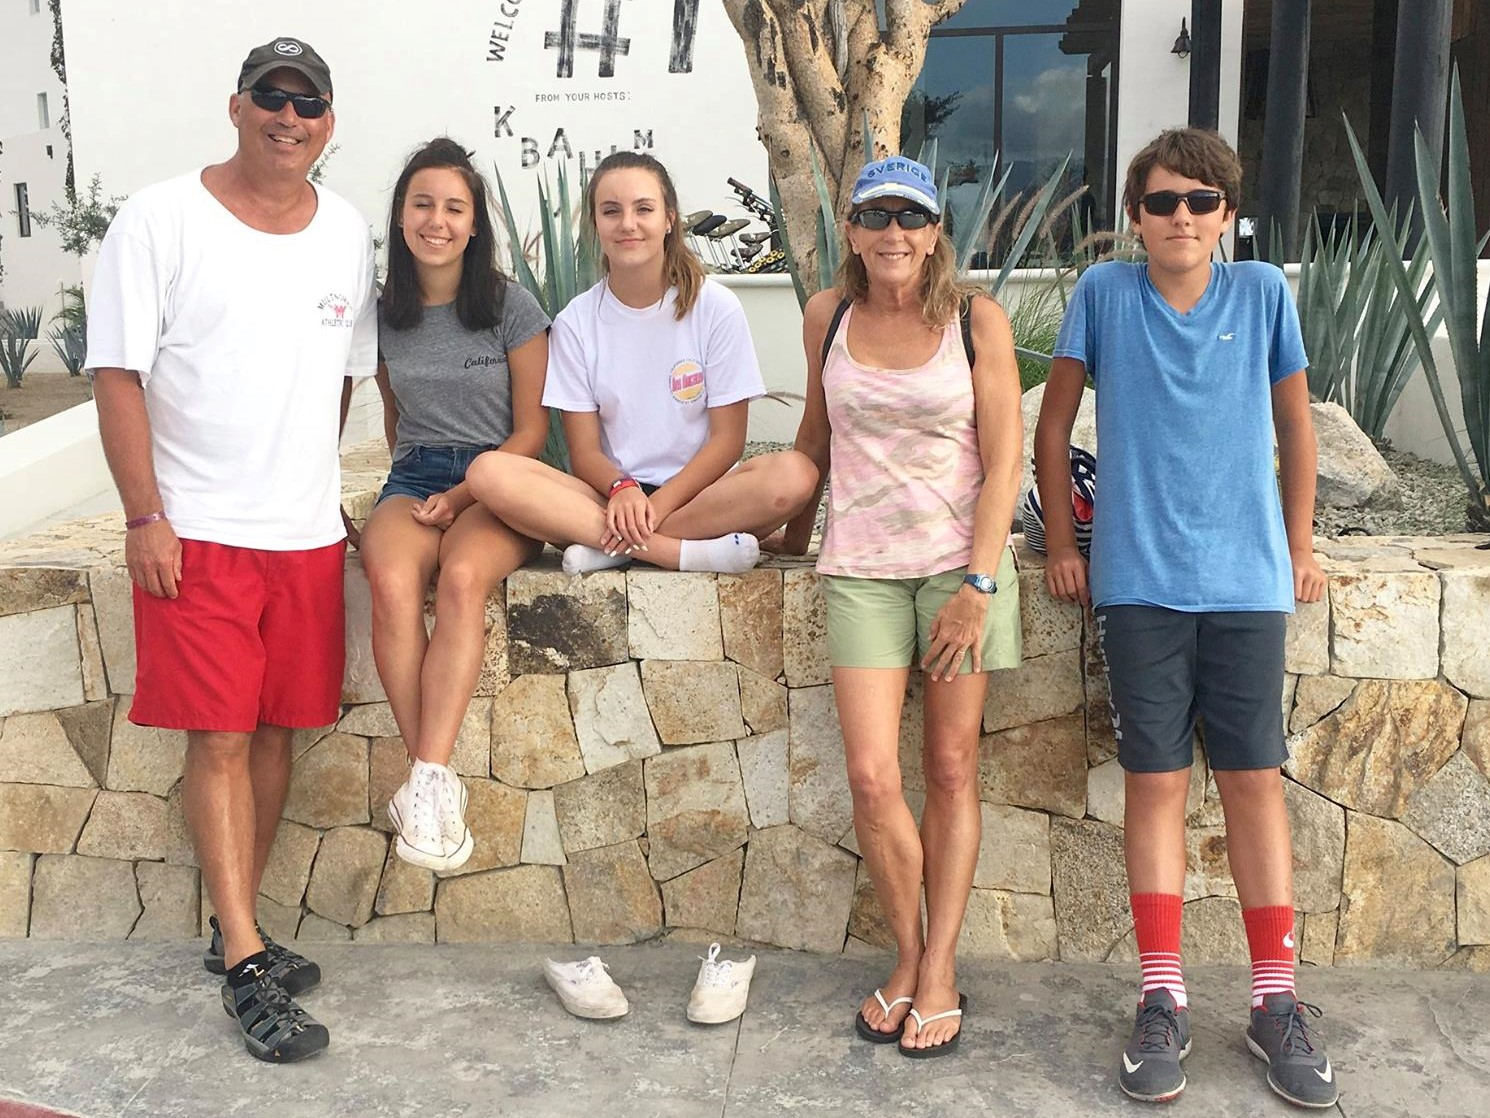 """""""Between running a business and raising three teens, updating our will and trust definitely fell to the back burner. We needed someone who was organized, knowledgeable, and creative. Shawna has all of these qualities and performs her job with kindness, confidence and compassion. She made the process so easy and fast. Marcus and I recommend her highly!"""""""